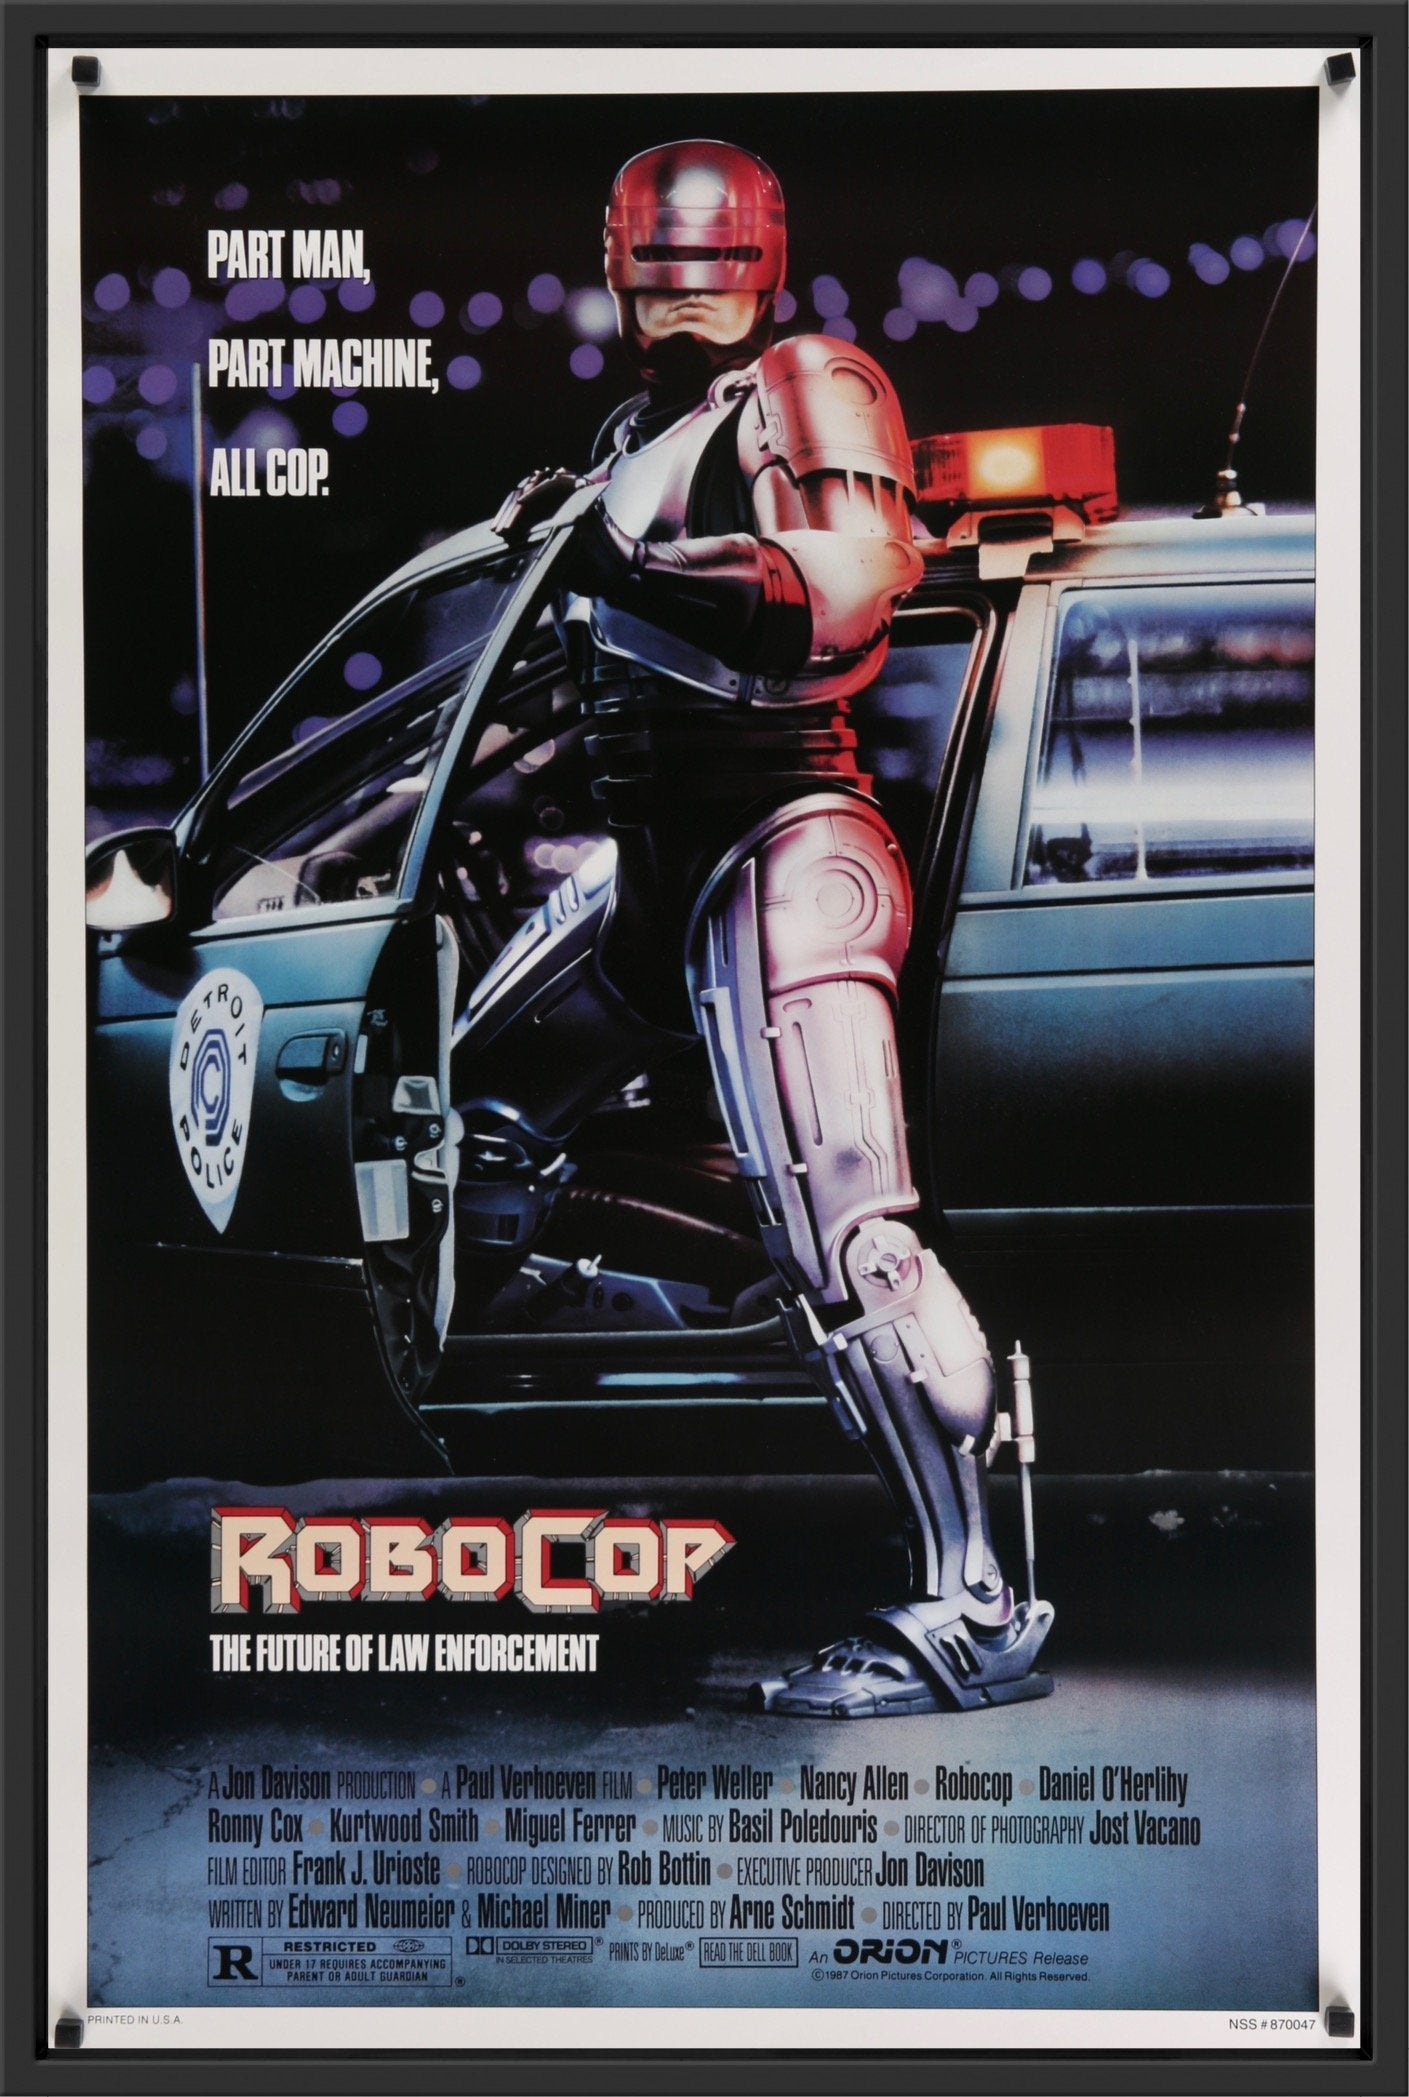 An original movie poster for the film Robocop